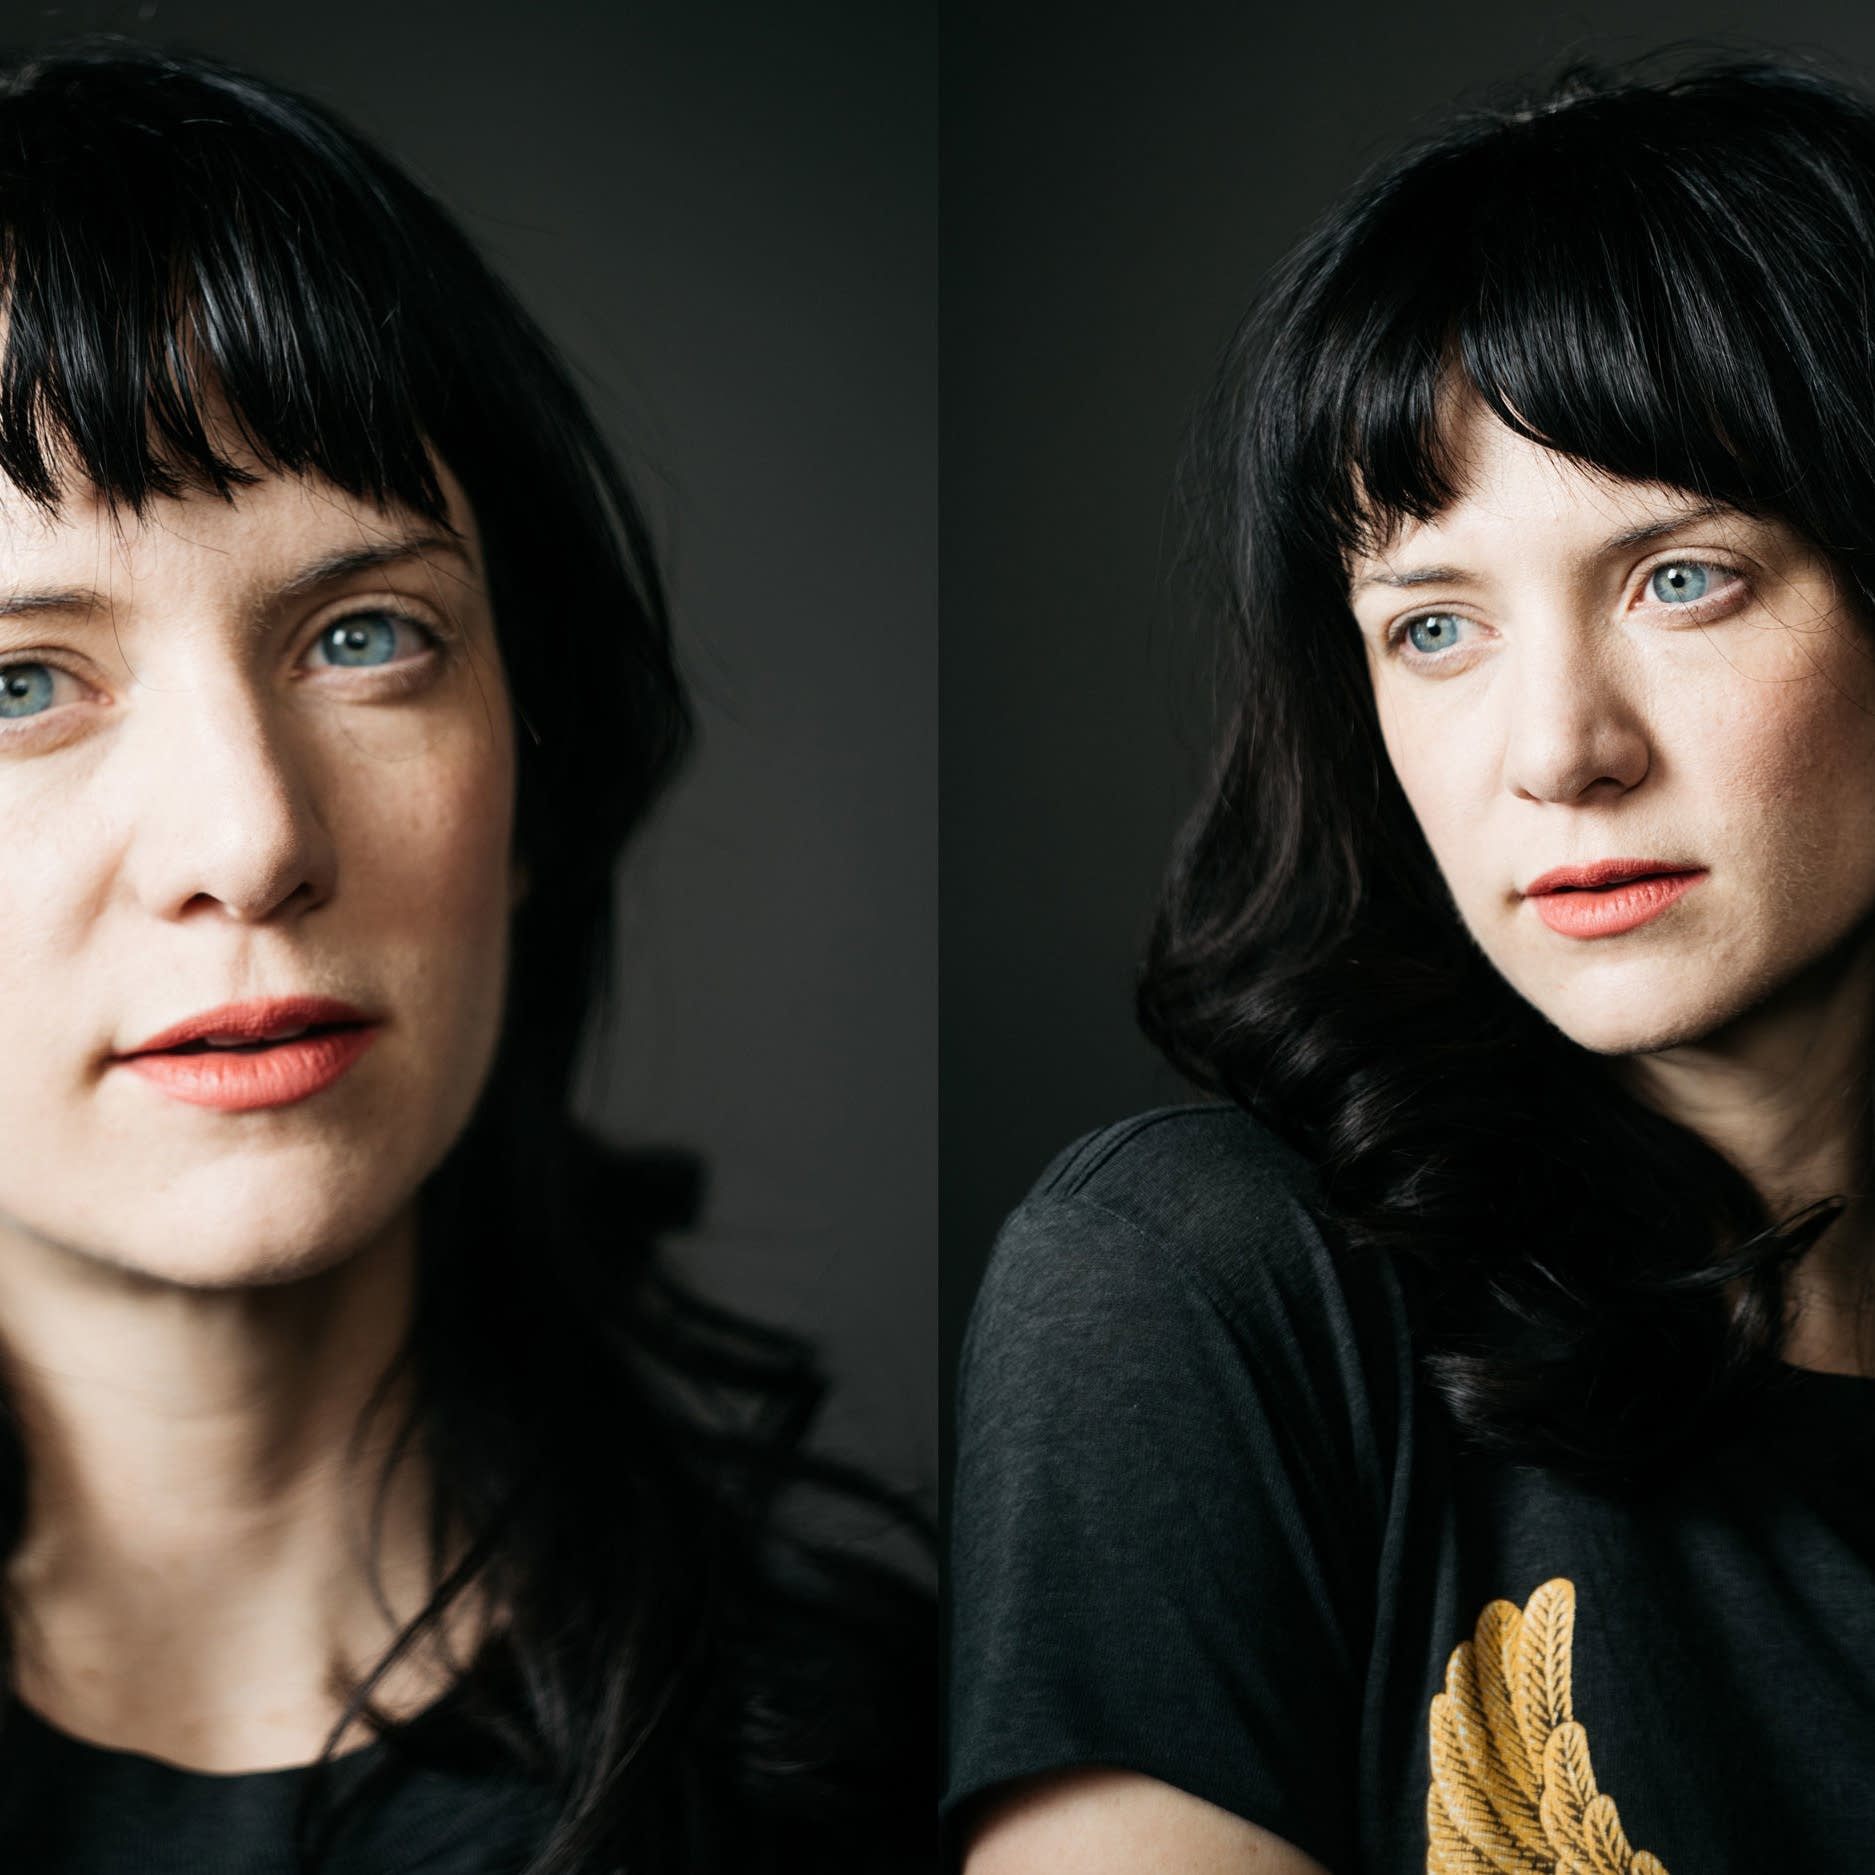 Nikki Lane portraits